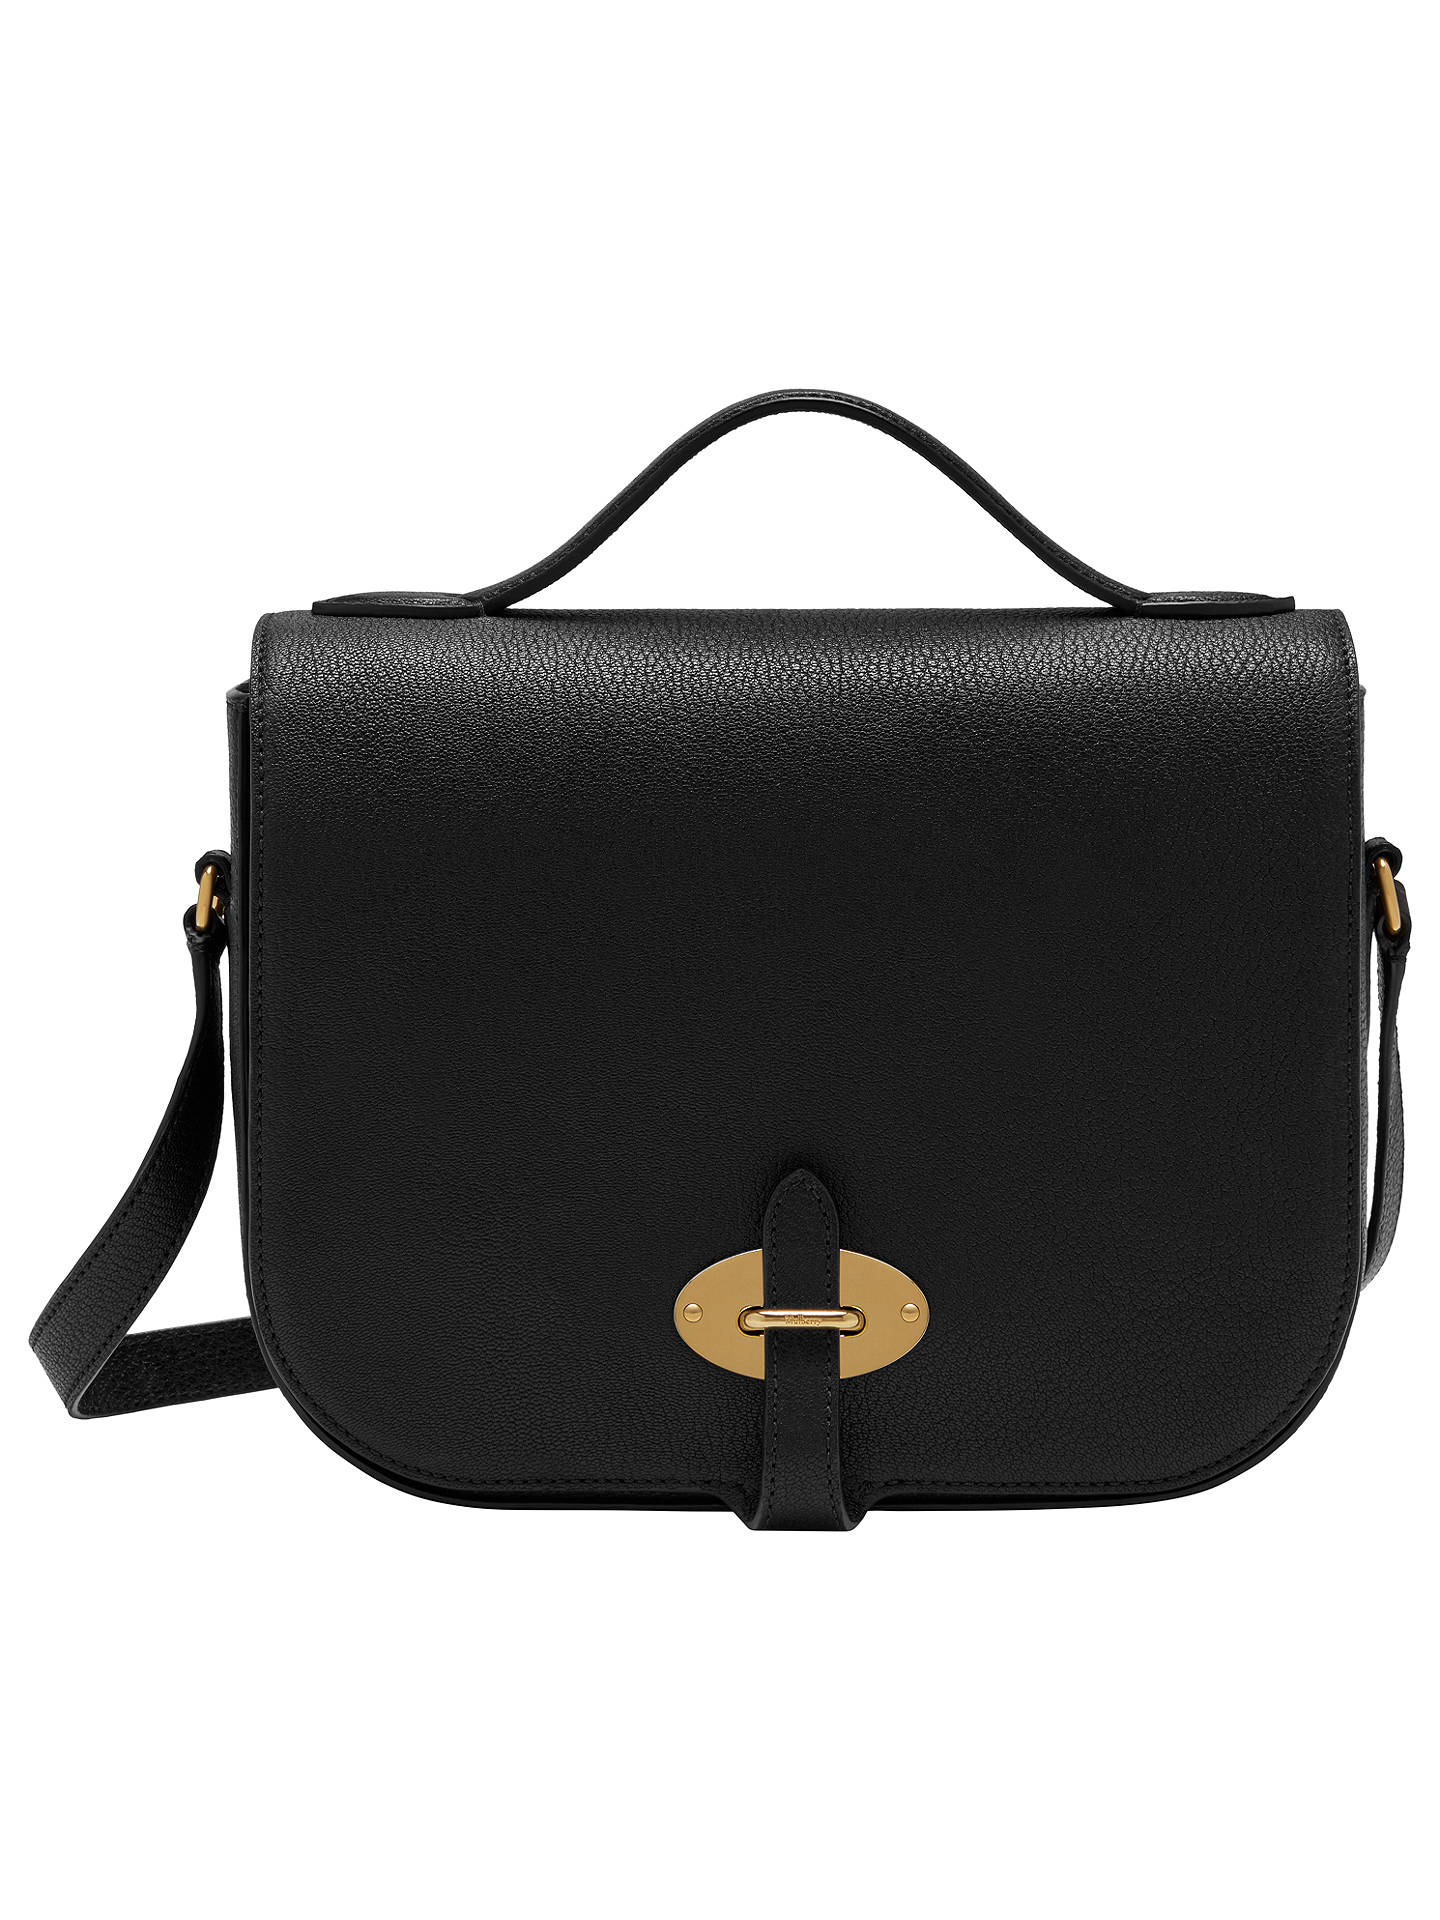 cc7cd15df4 Mulberry Tenby Leather Satchel at John Lewis   Partners